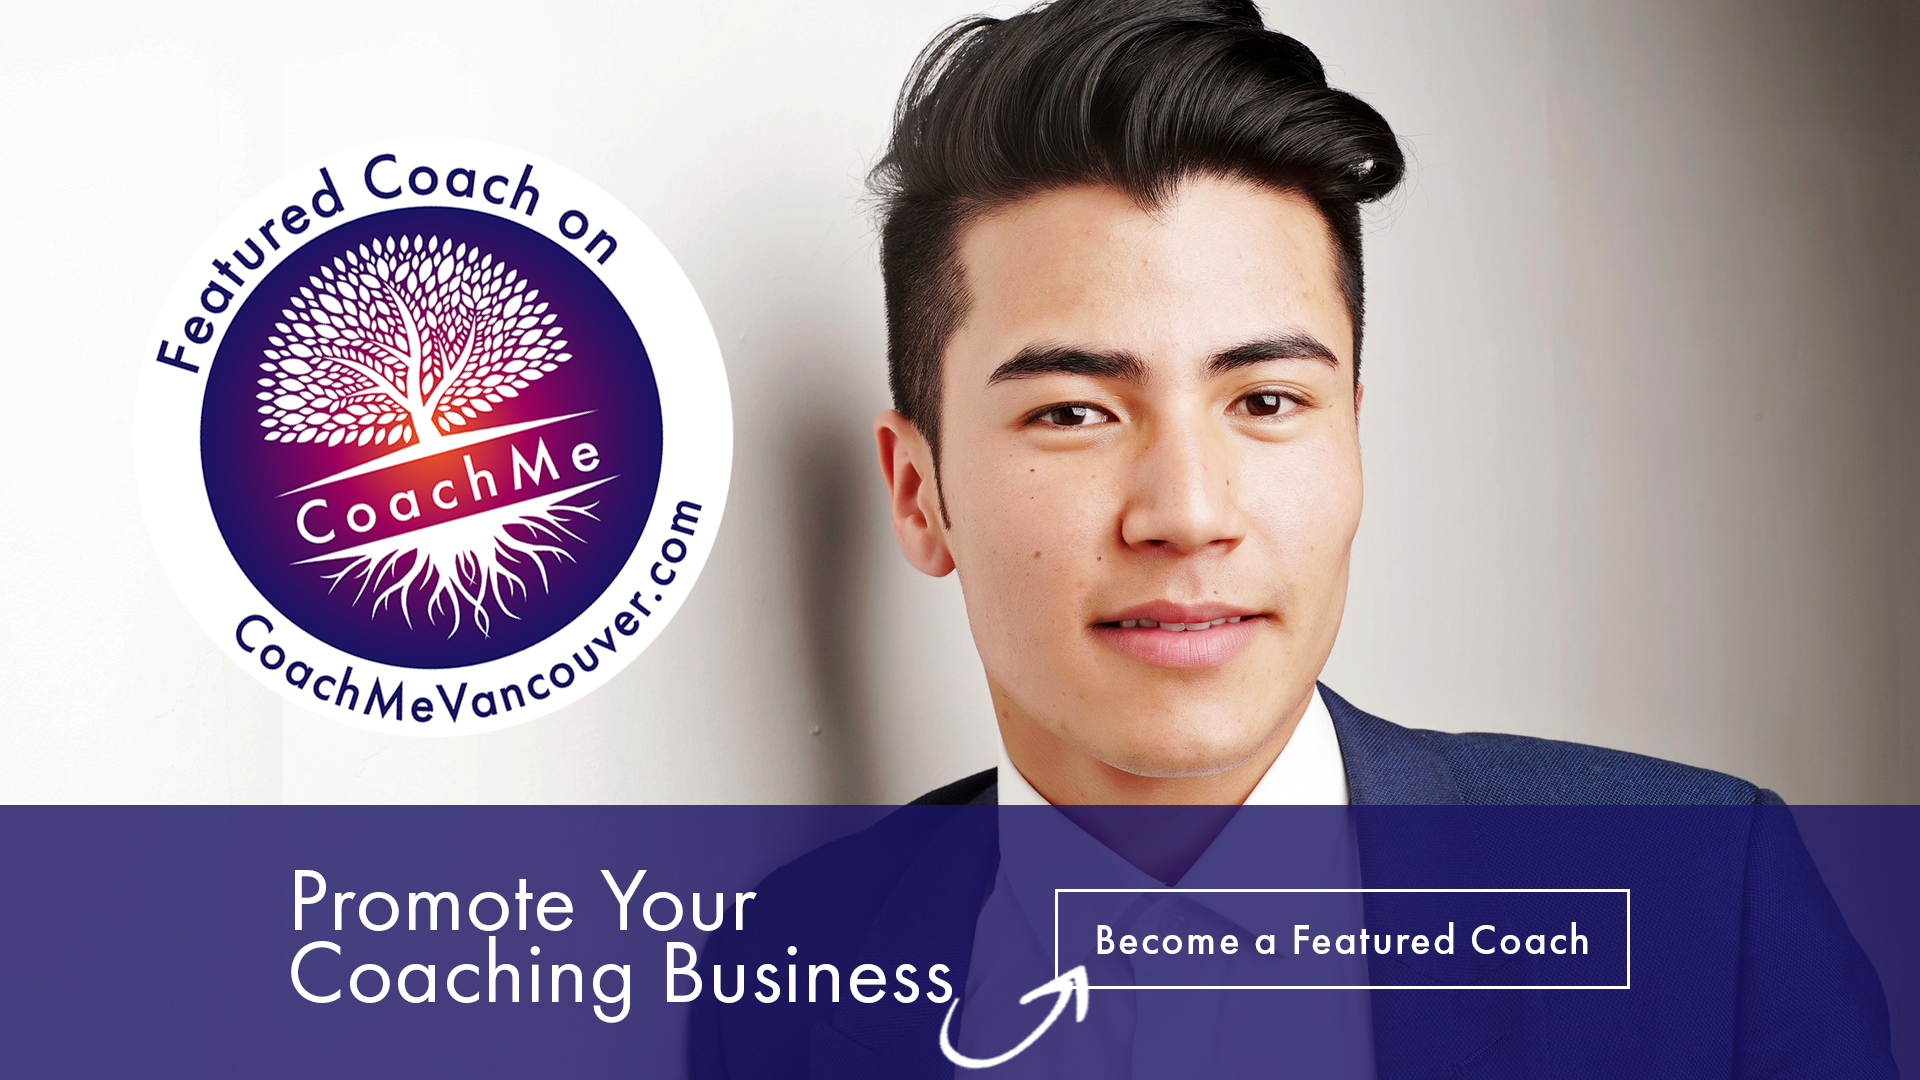 Certified Coaches - Build Your Coaching Business - Marketing For Coaches - CoachMe Vancouver